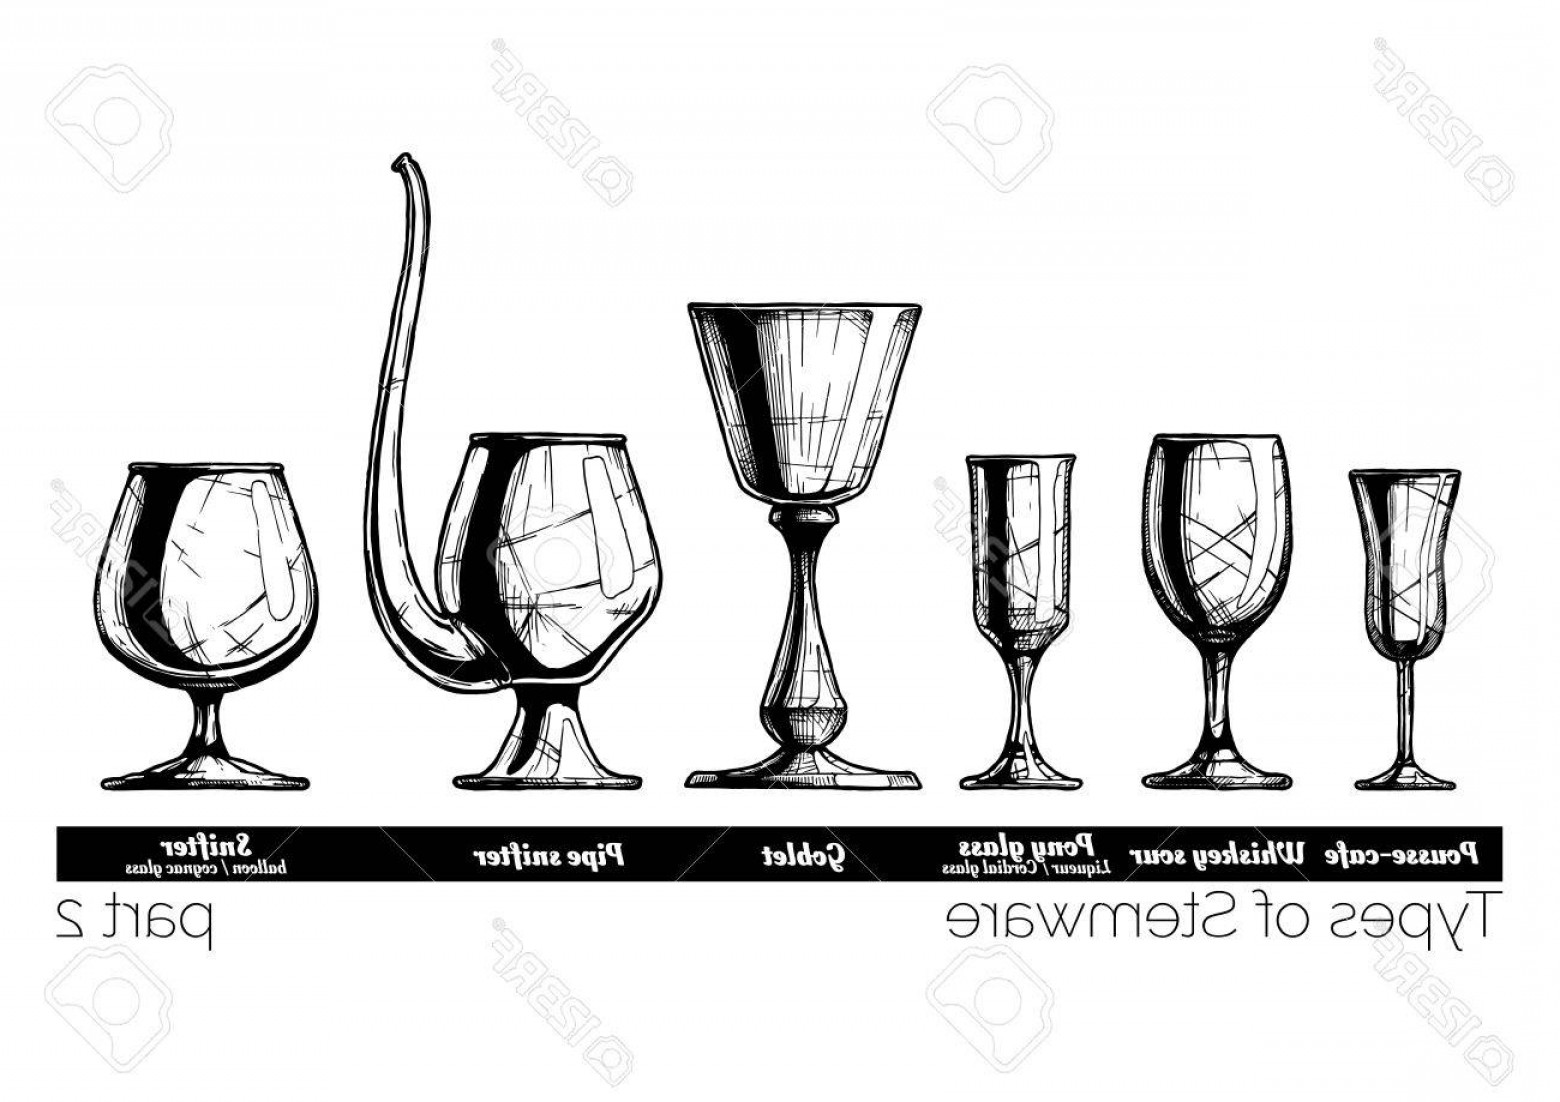 Beer Chalice Vector Logo: Photostock Vector Types Of Stemware Pousse Cafe Whiskey Sour Pony Glass Goblet Pipe Snifter And Balloon Illustration O